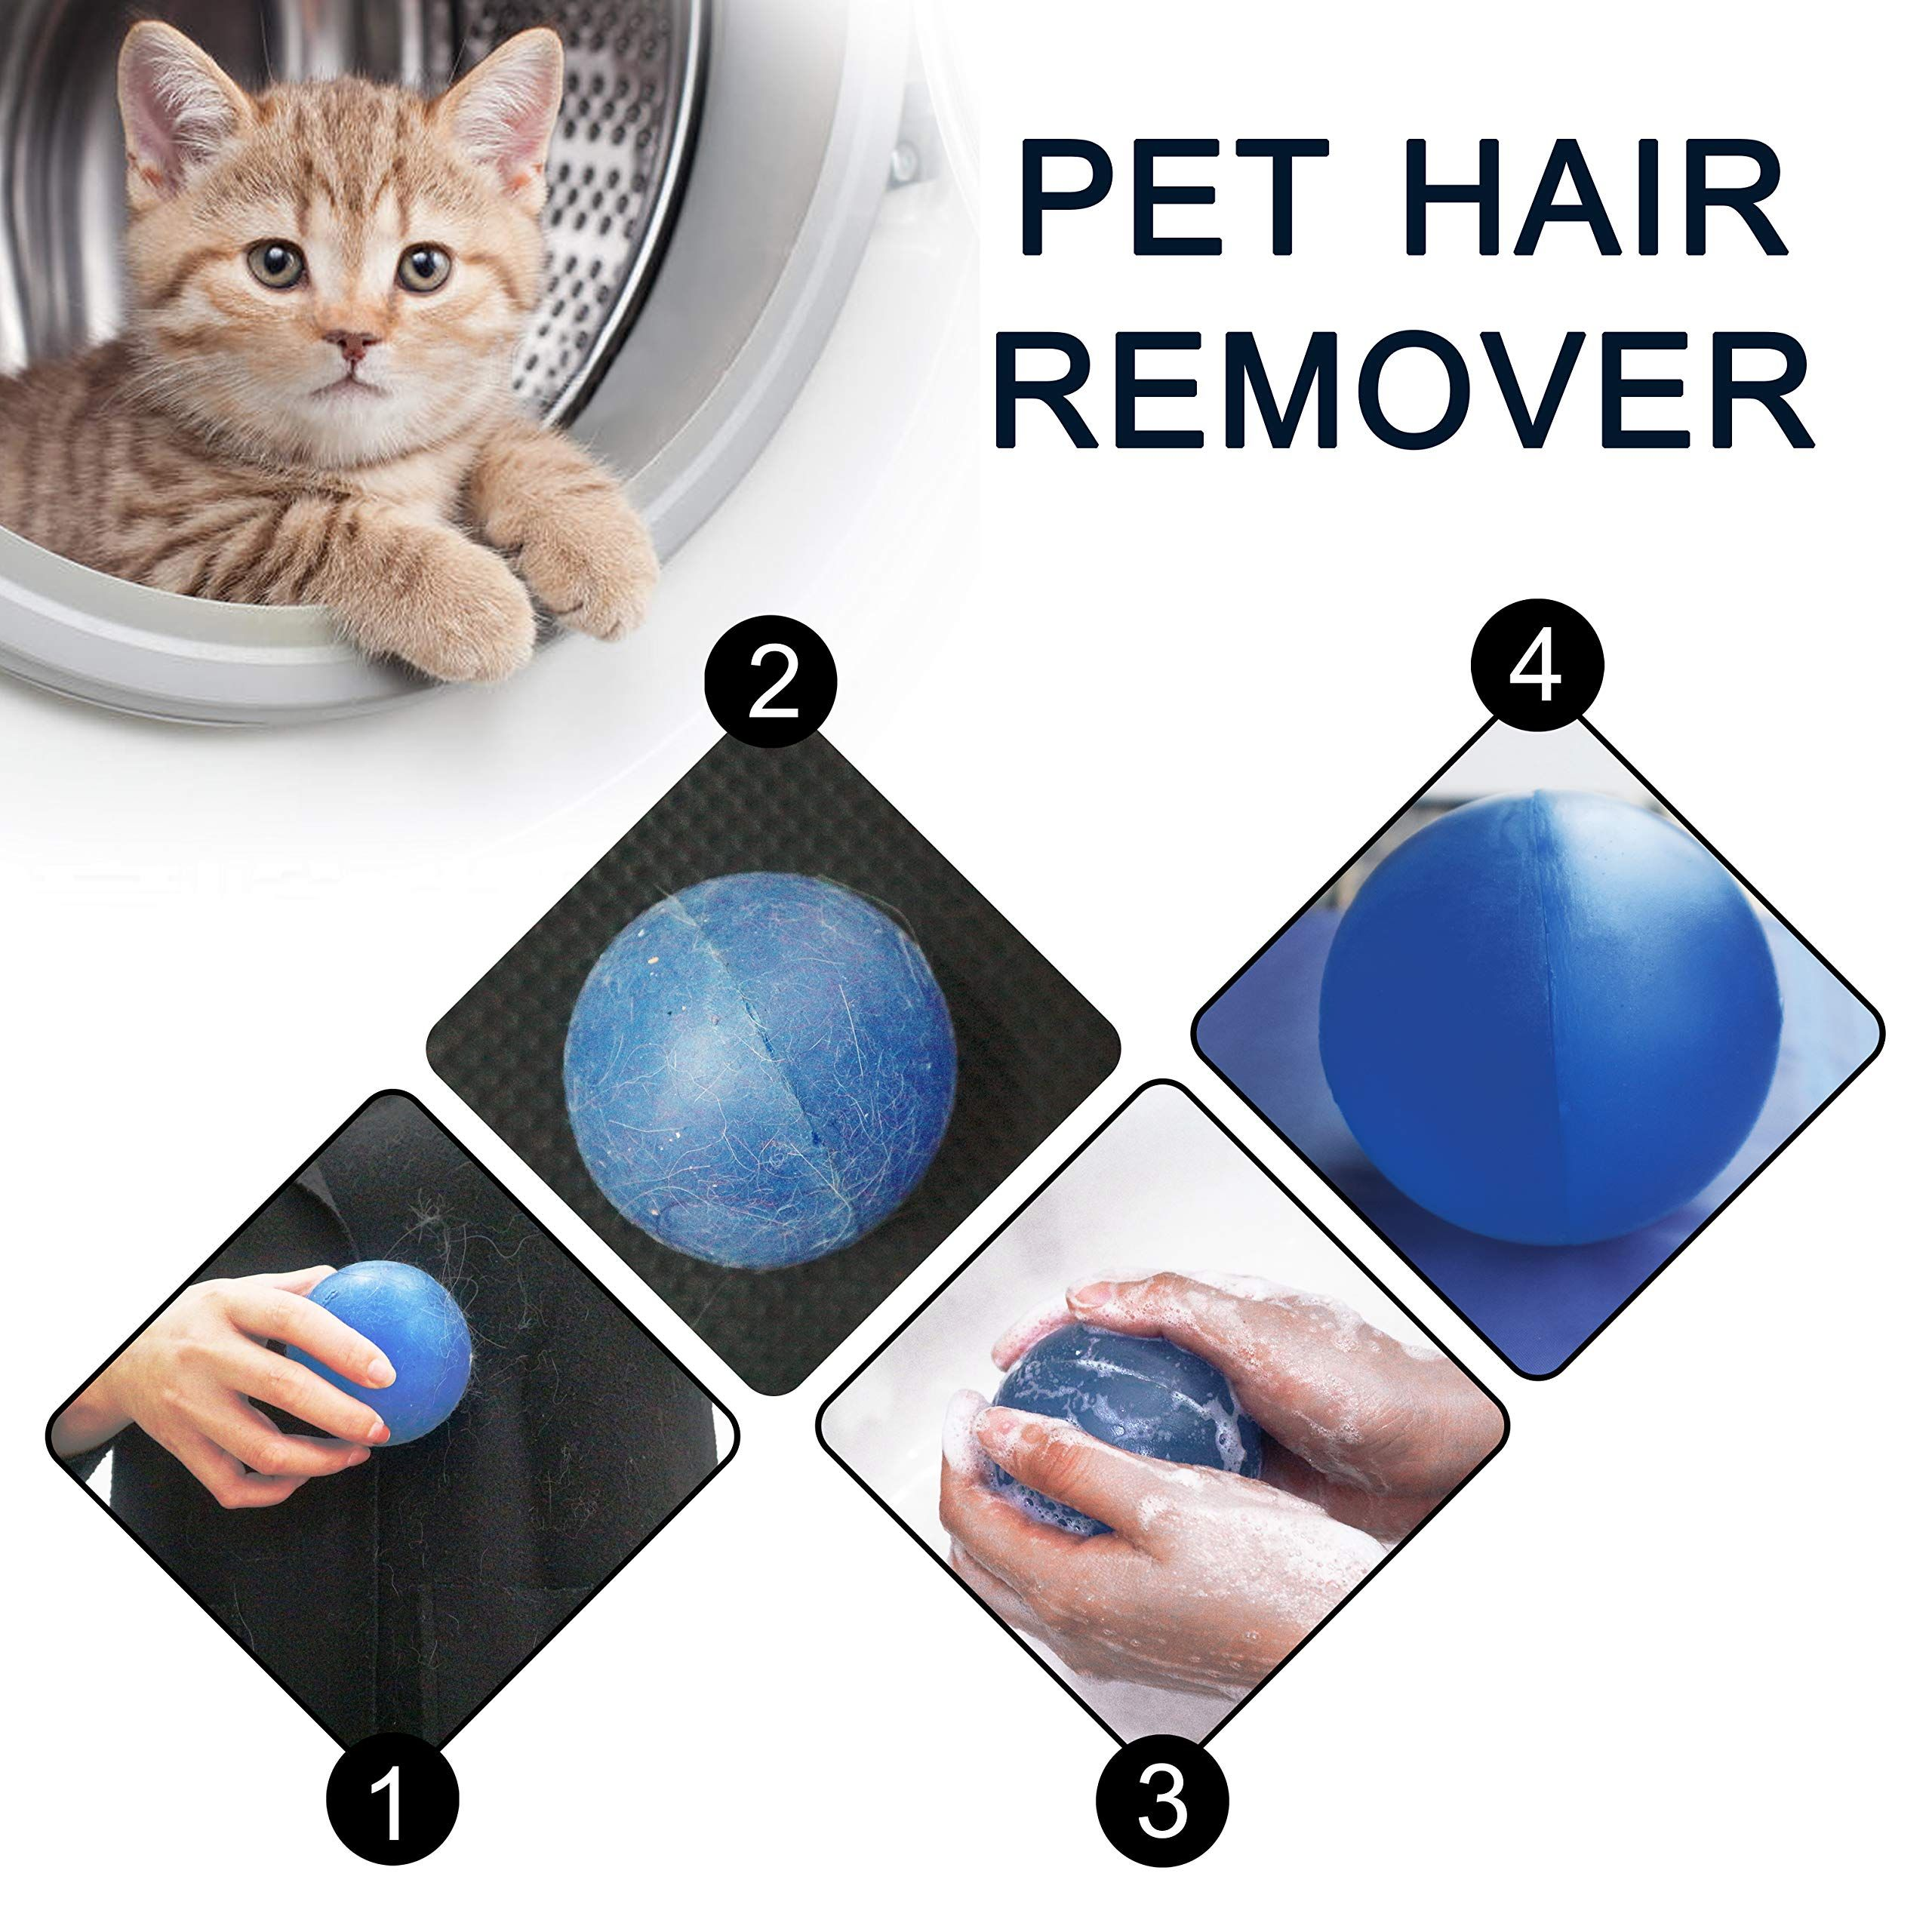 How To Get Cat Hair Off Without Lint Roller